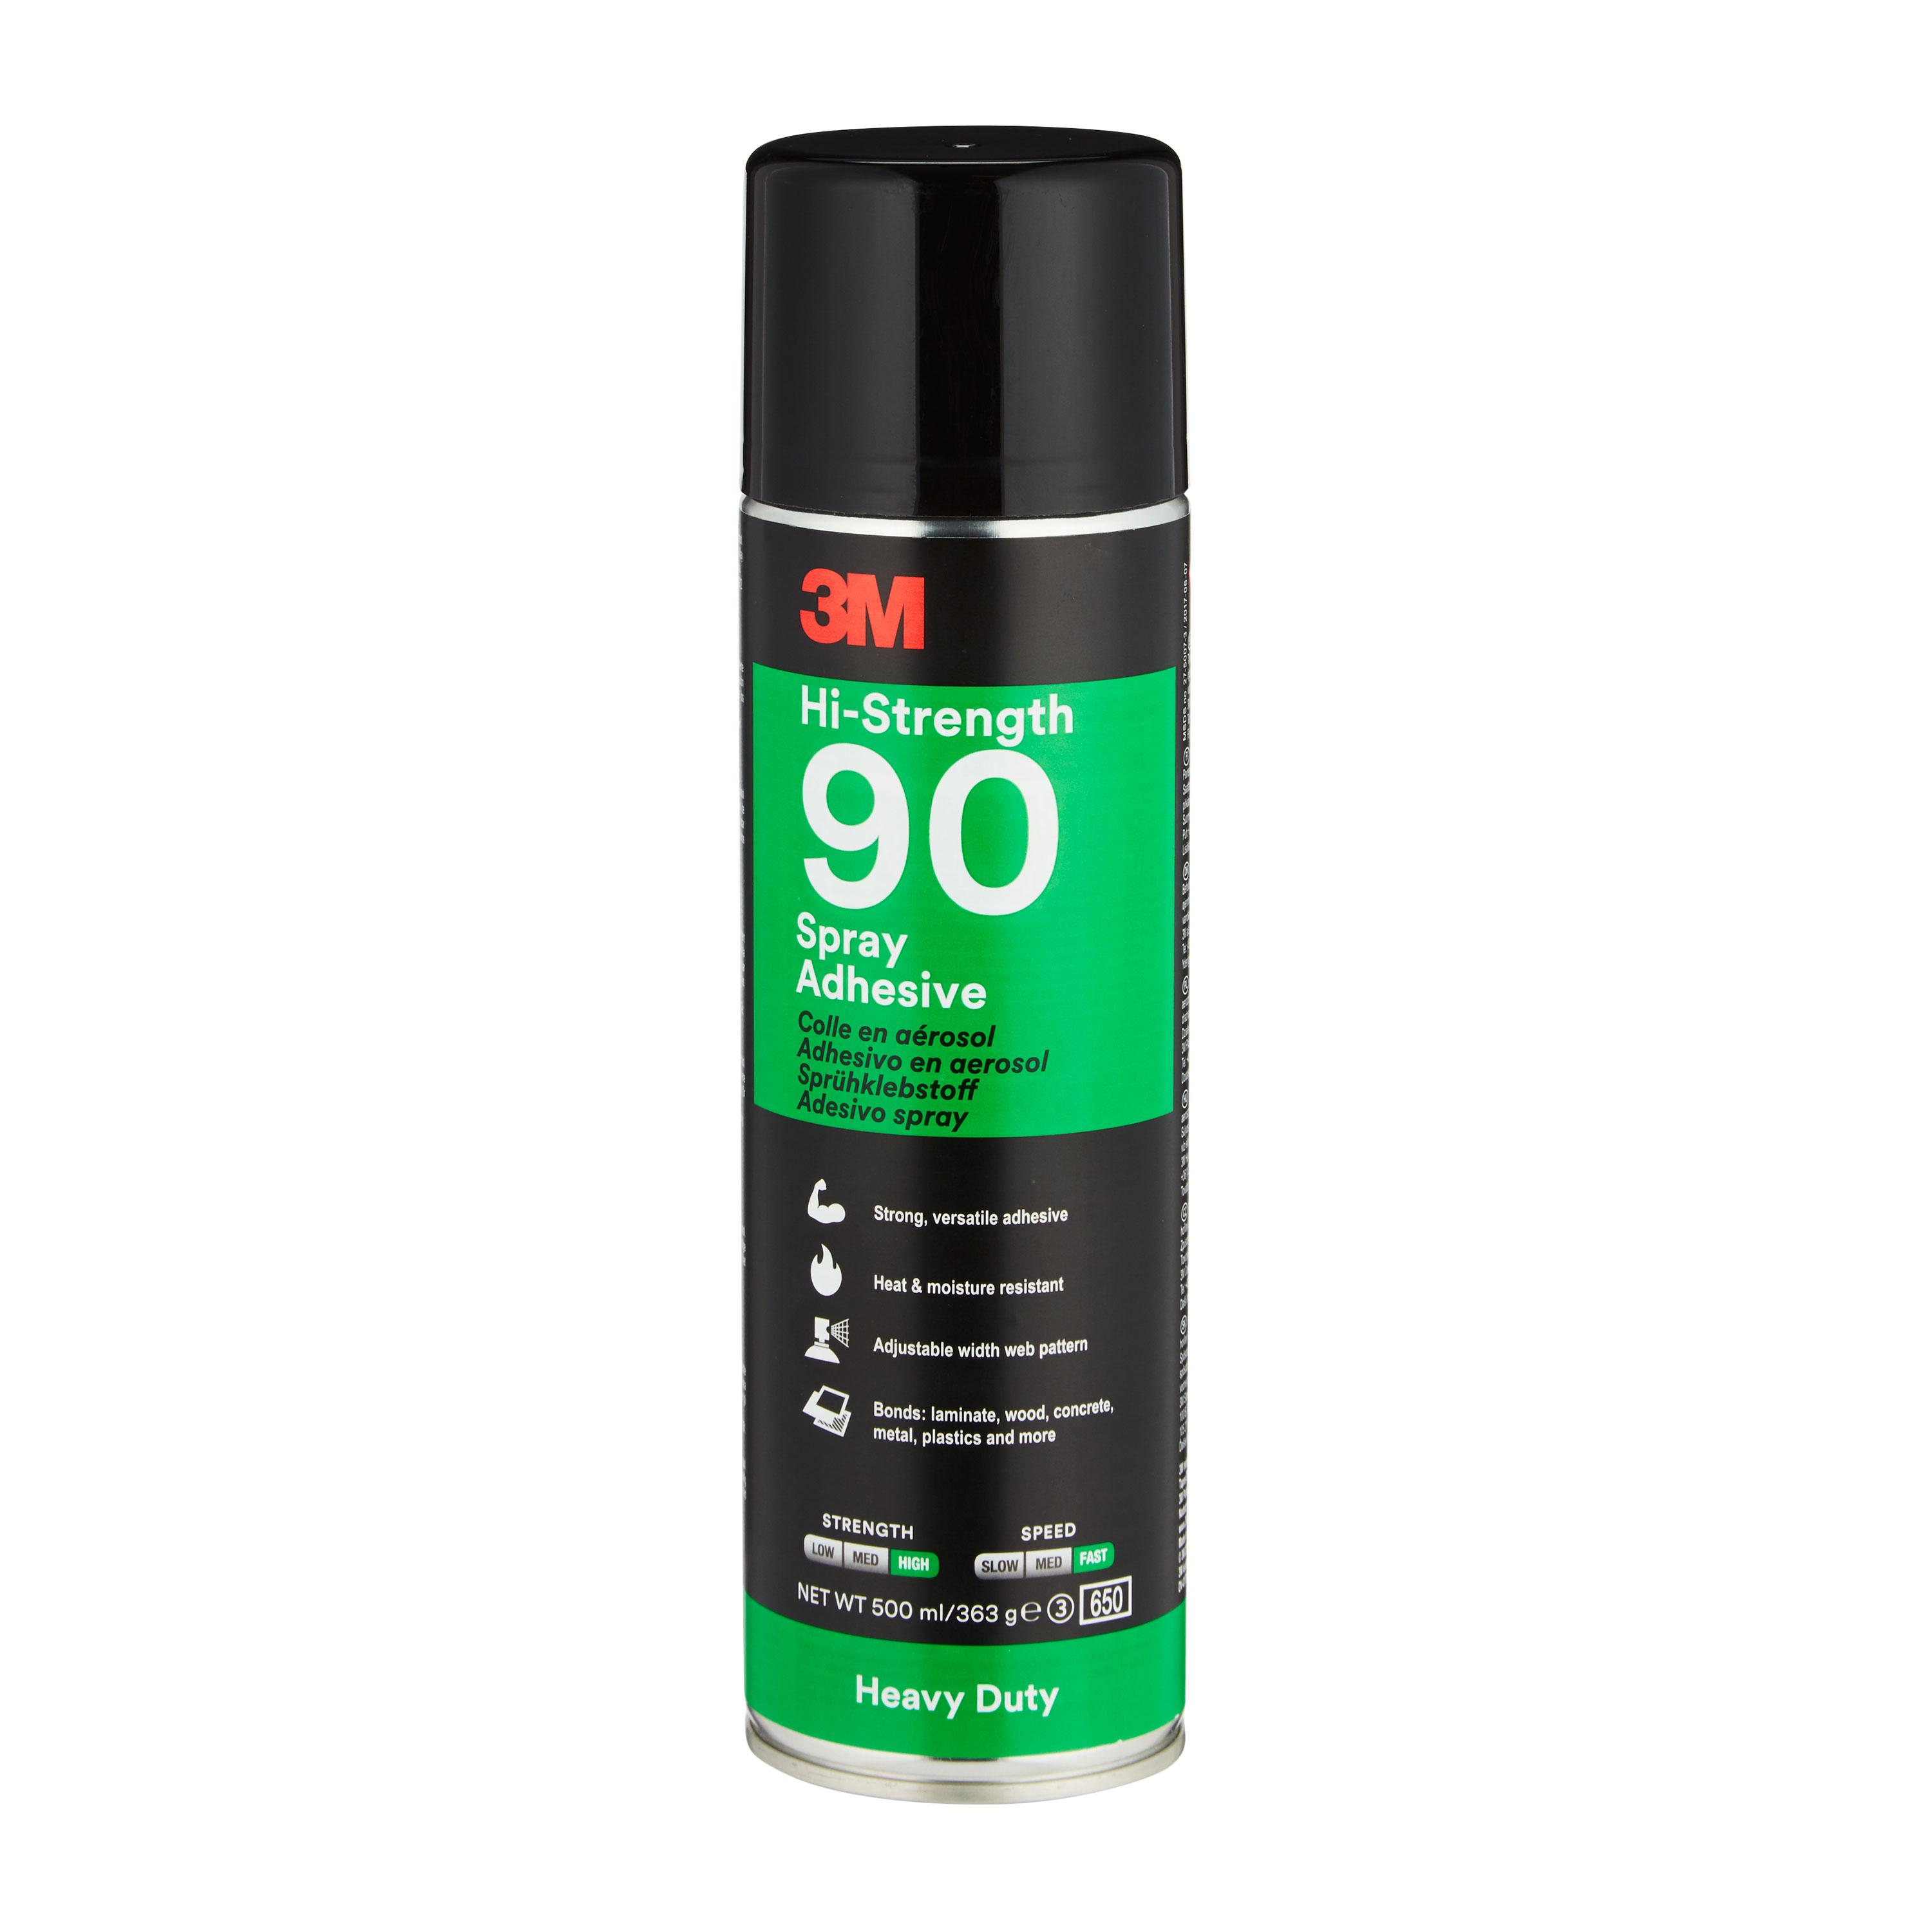 3M 90 Hi-Strength Spray Adhesive, 499gm